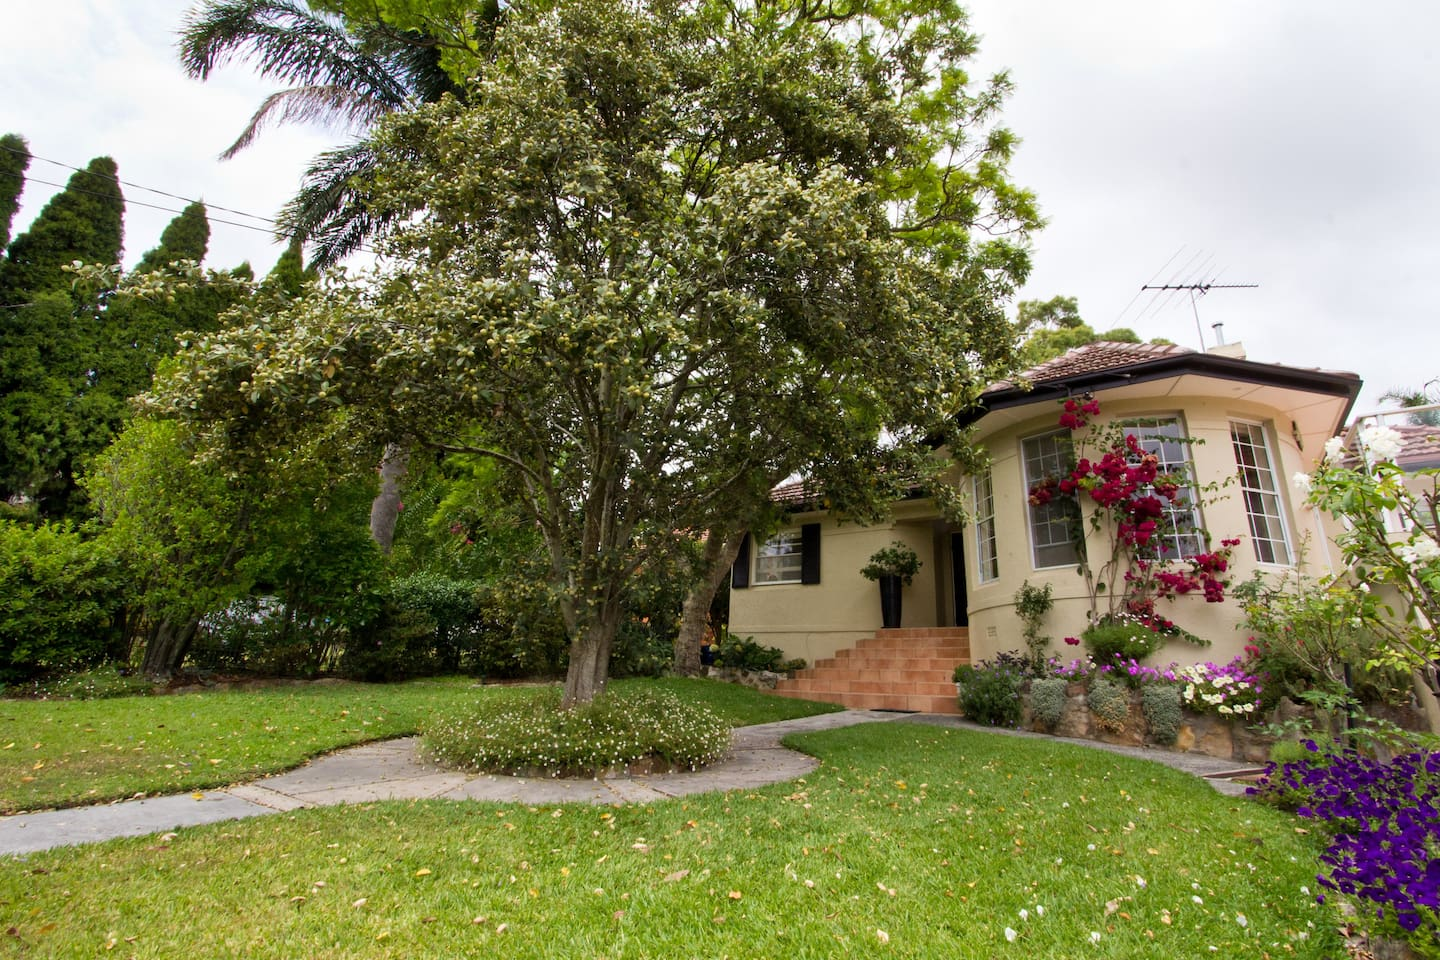 Quiet, self-contained accommodation. One bedroom bathroom ; kitchenette. Separate entrance. Street parking. Centrally located between the northern beaches & the city.